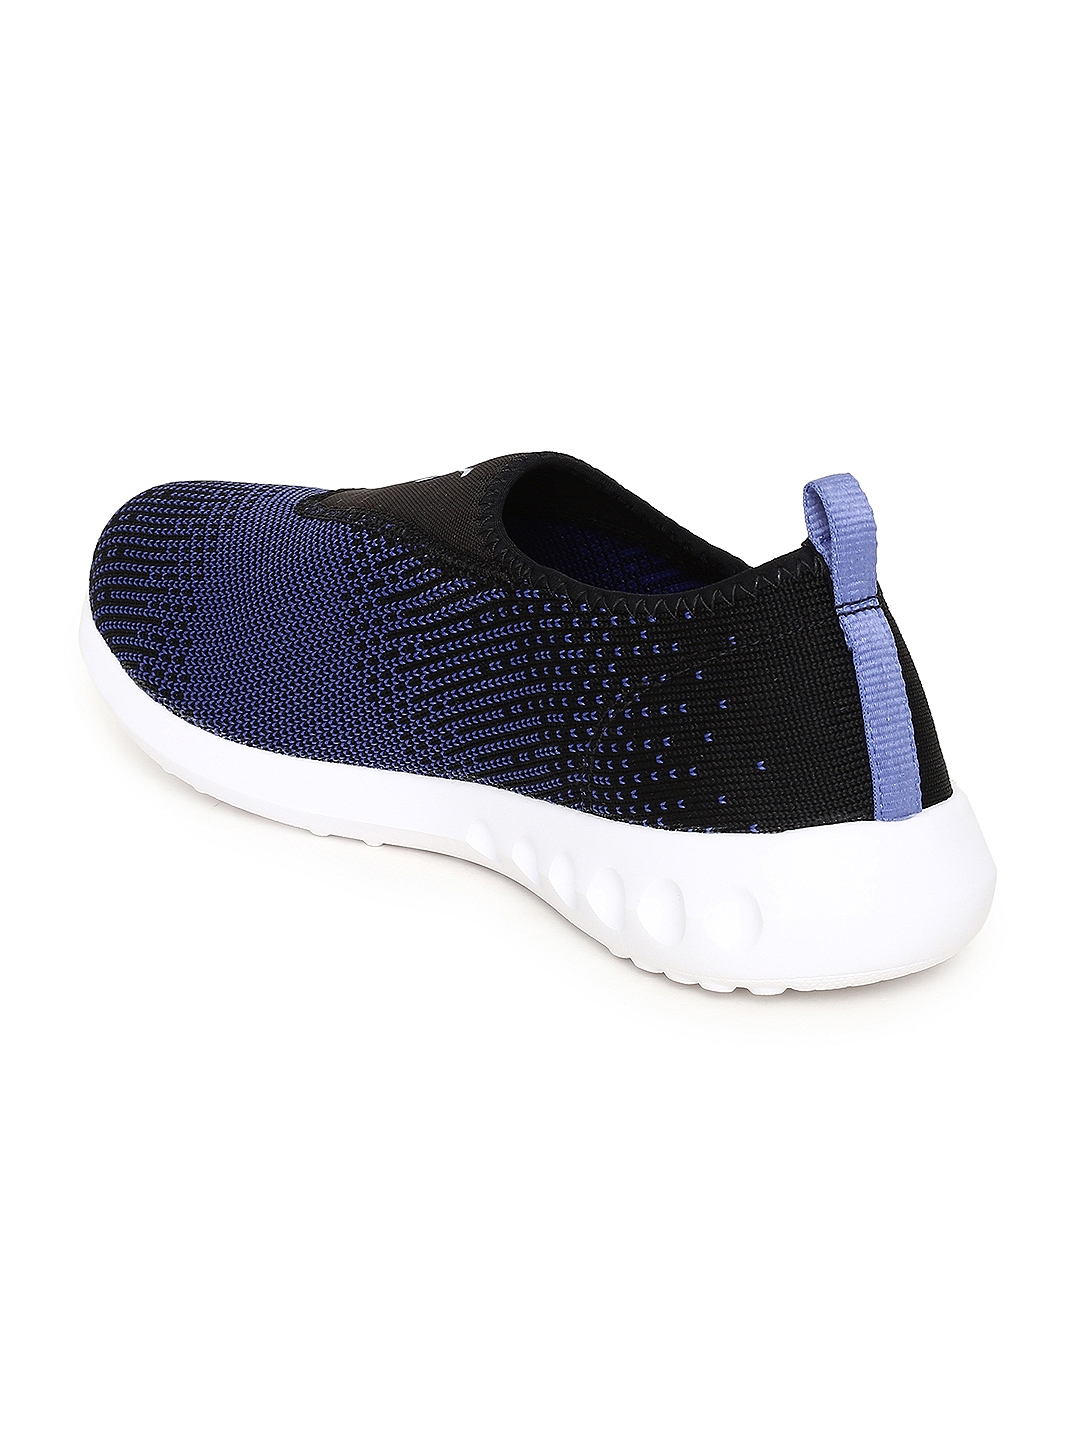 64d0df6bd213 Buy Puma Women Blue Carson 2 Slip On Running Shoes - Sports Shoes ...